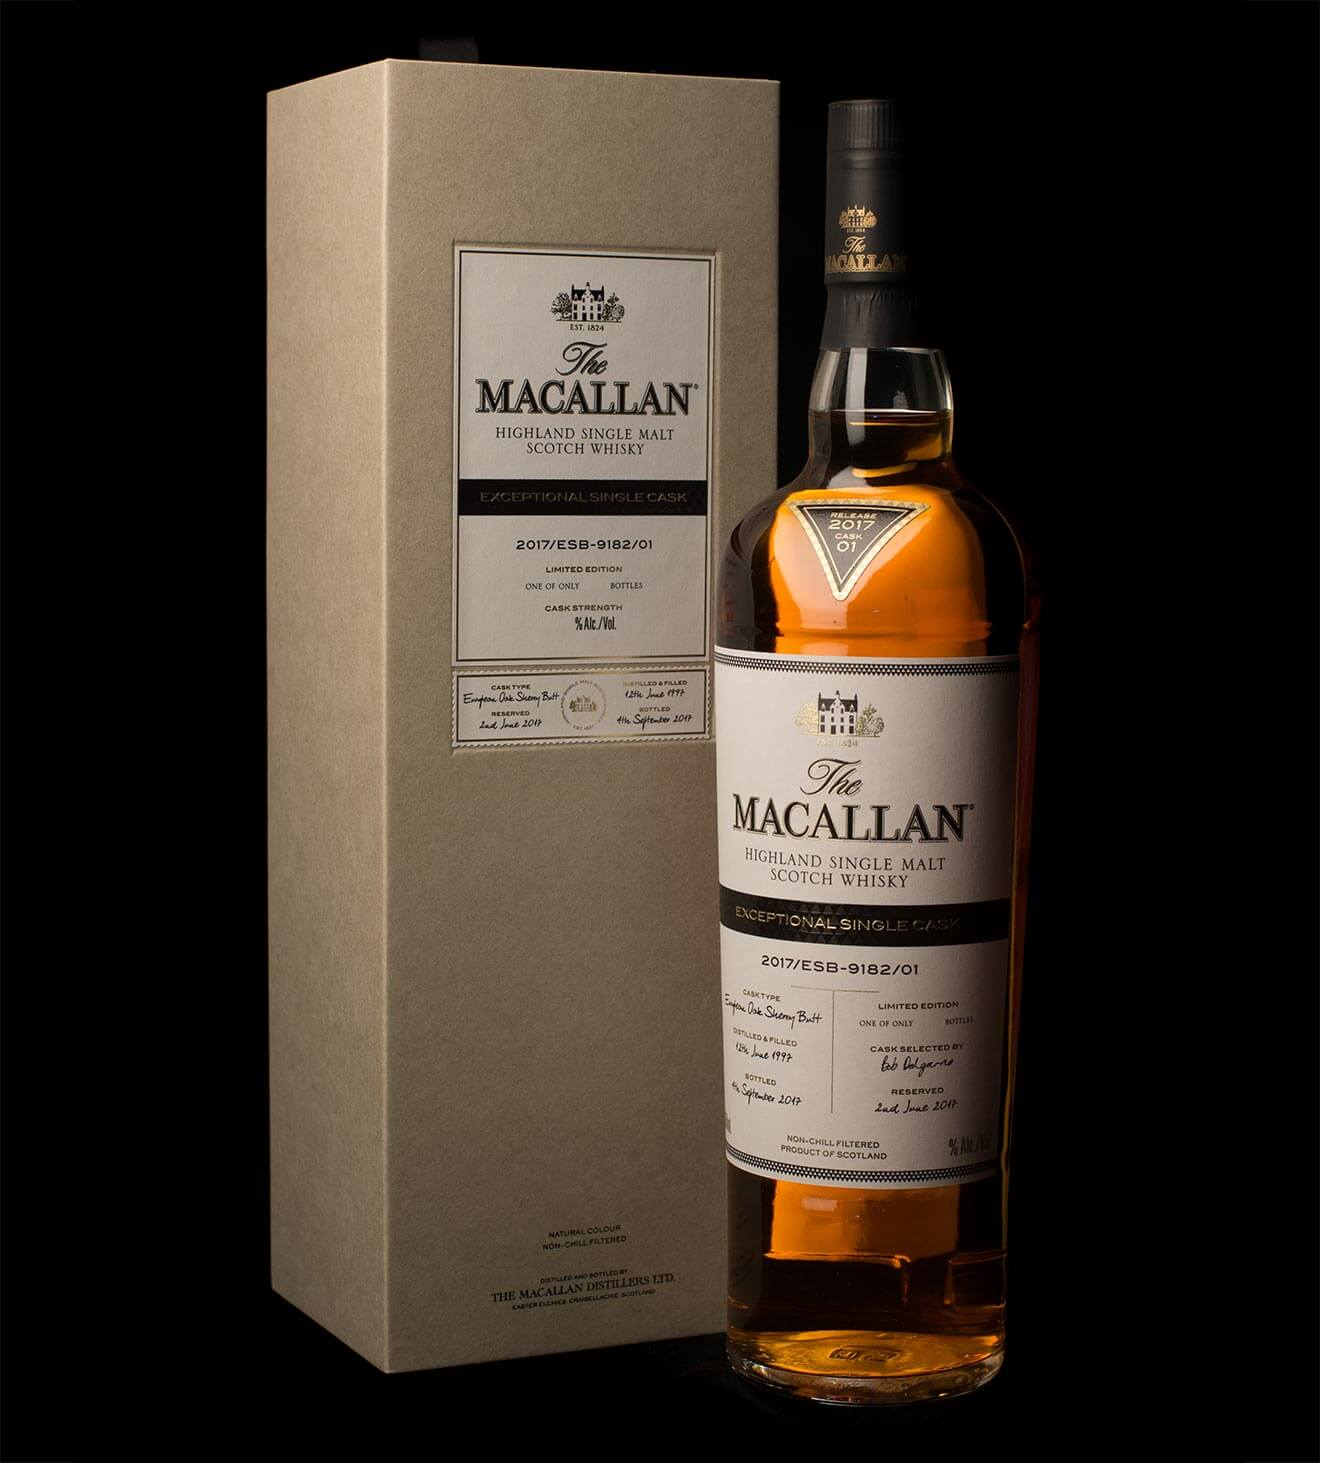 The Macallan Releases Exceptional Single Cask Range, bottle and packing on black